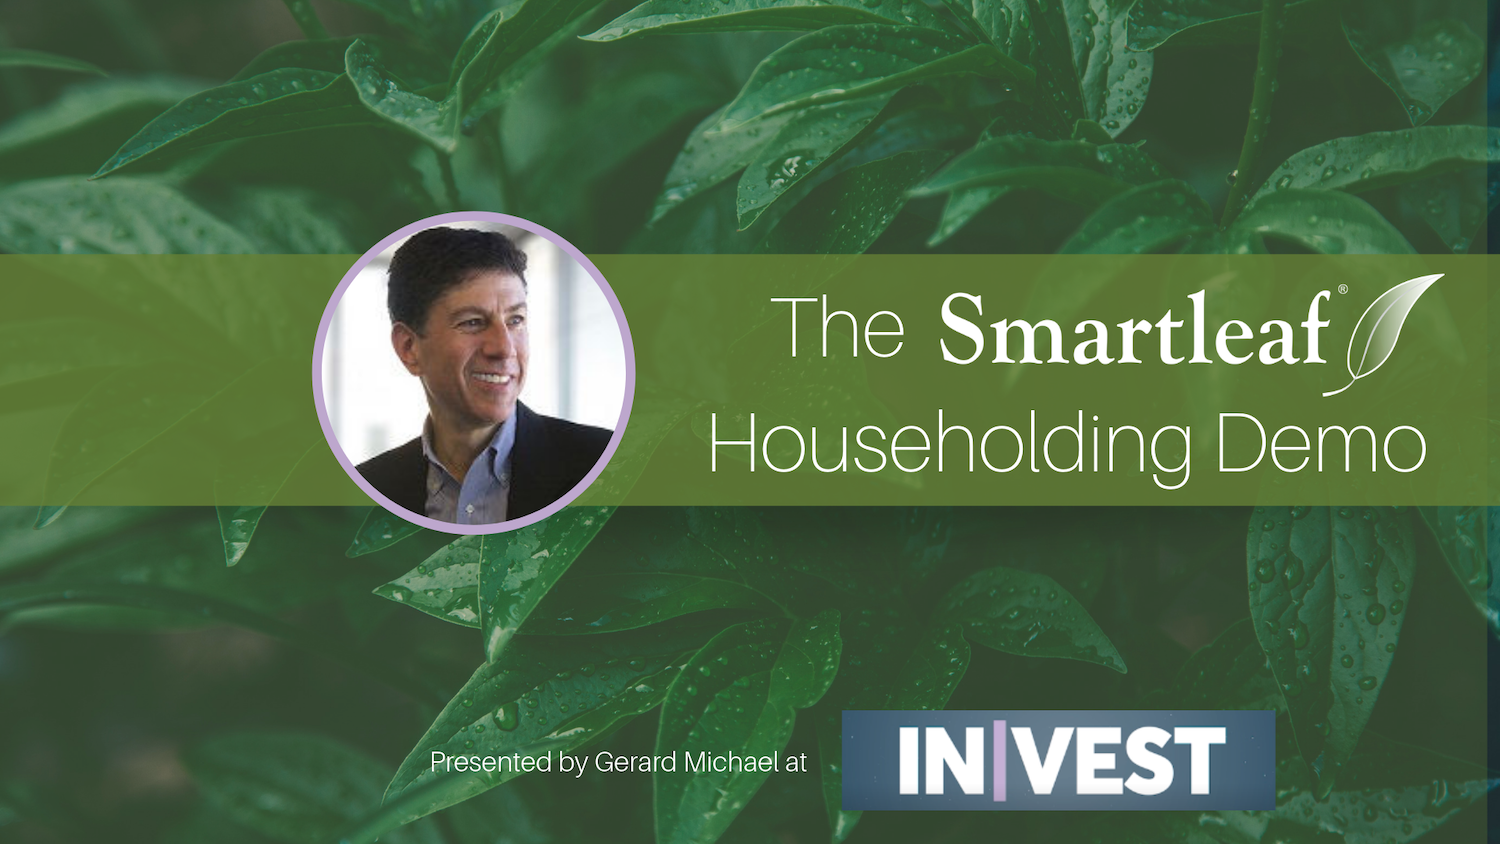 Smartleaf InVest 2019 Demo: Householding